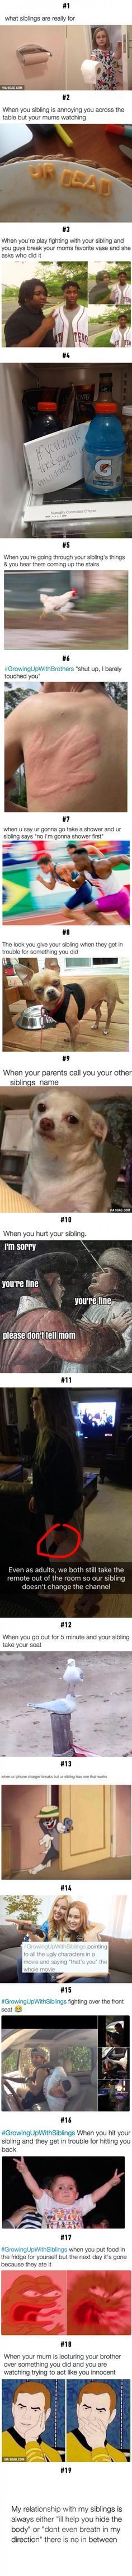 19 Perks Of Having A Sibling( I find them funny even though I'm an only child )